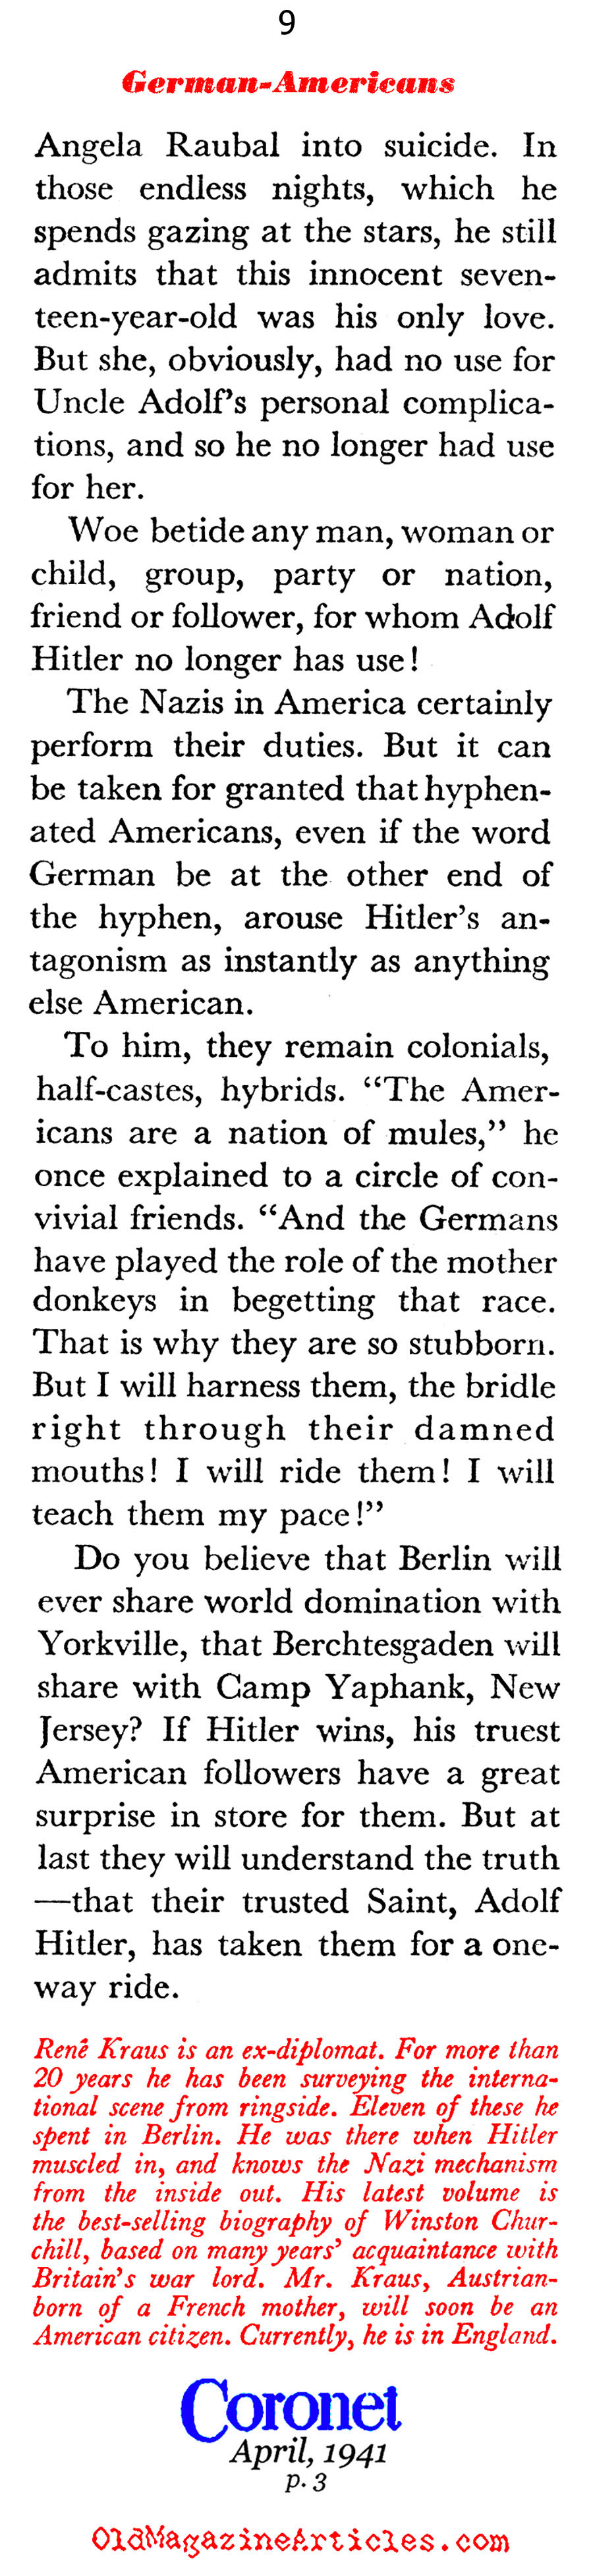 Adolf Hitler and the German-Americans (Coronet Magazine, 1941)